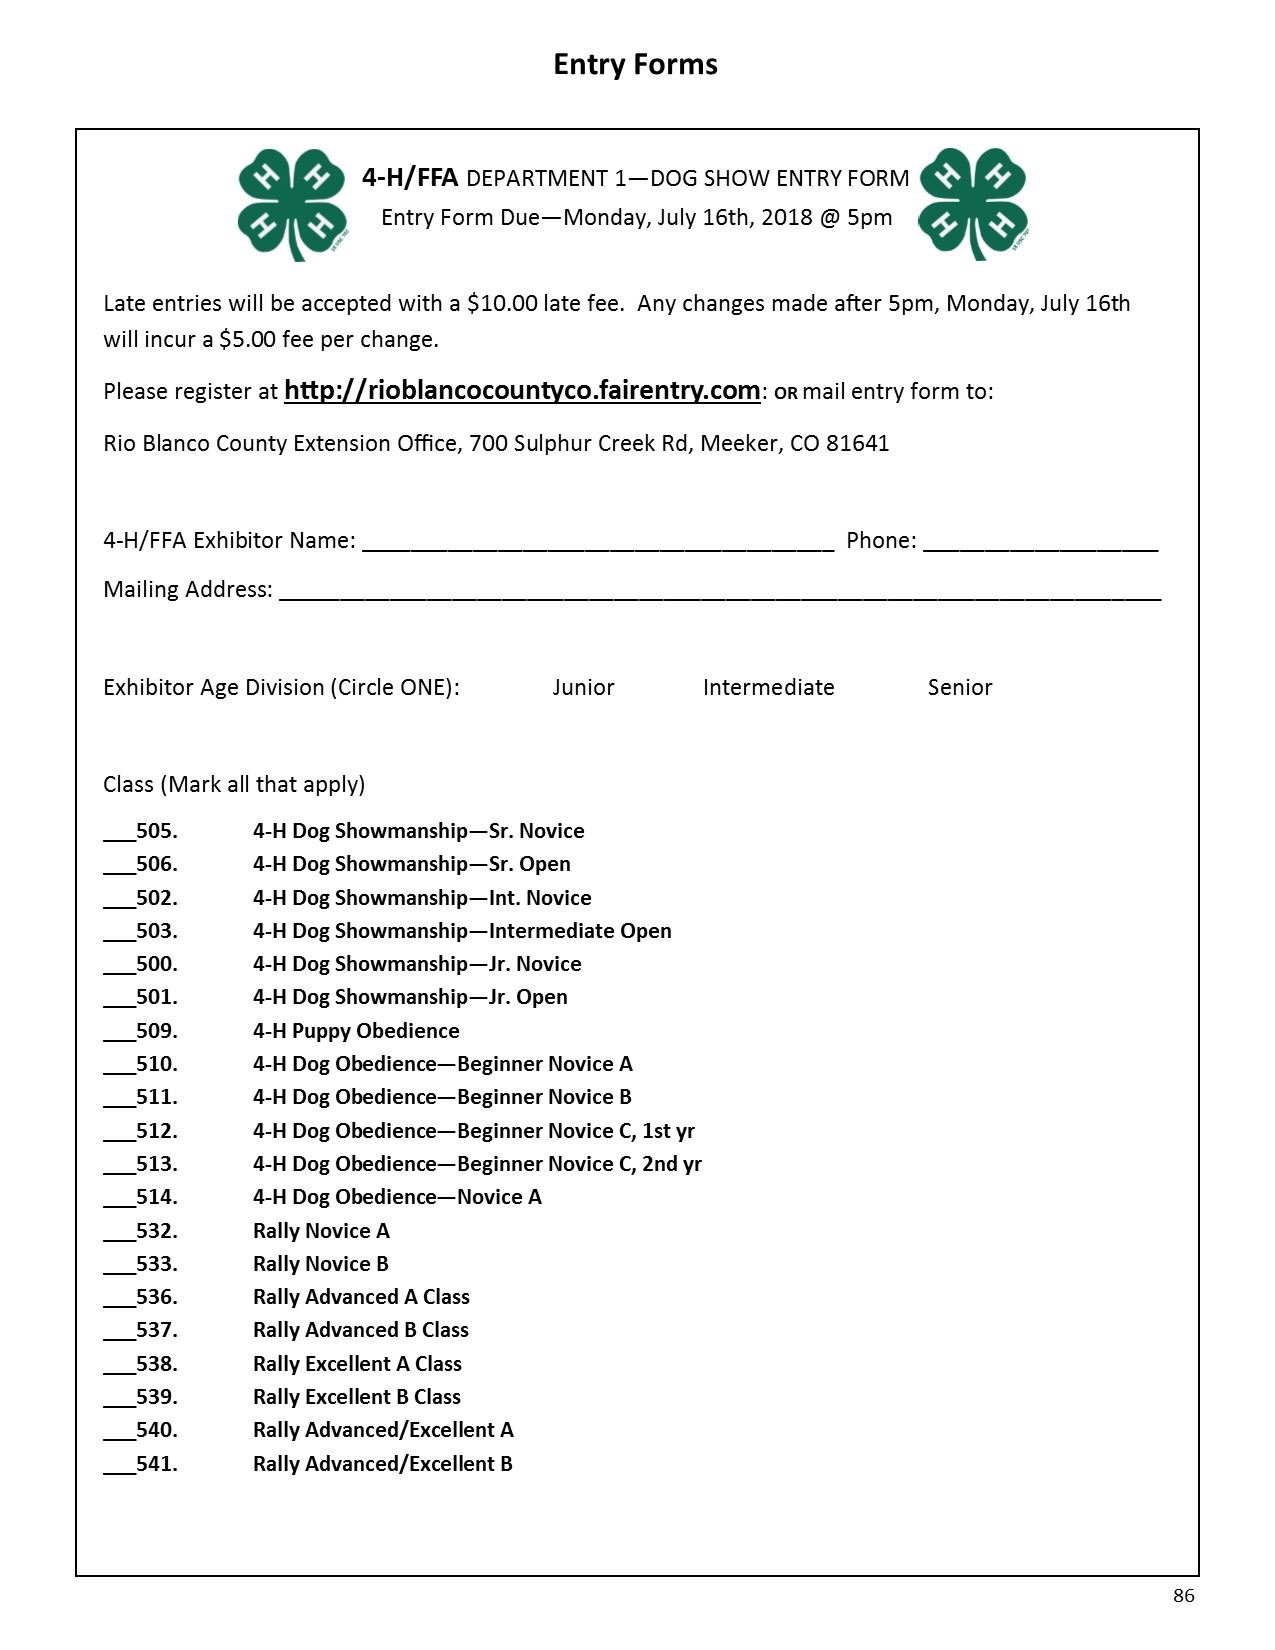 4-H Dog Show Registration Form 2018